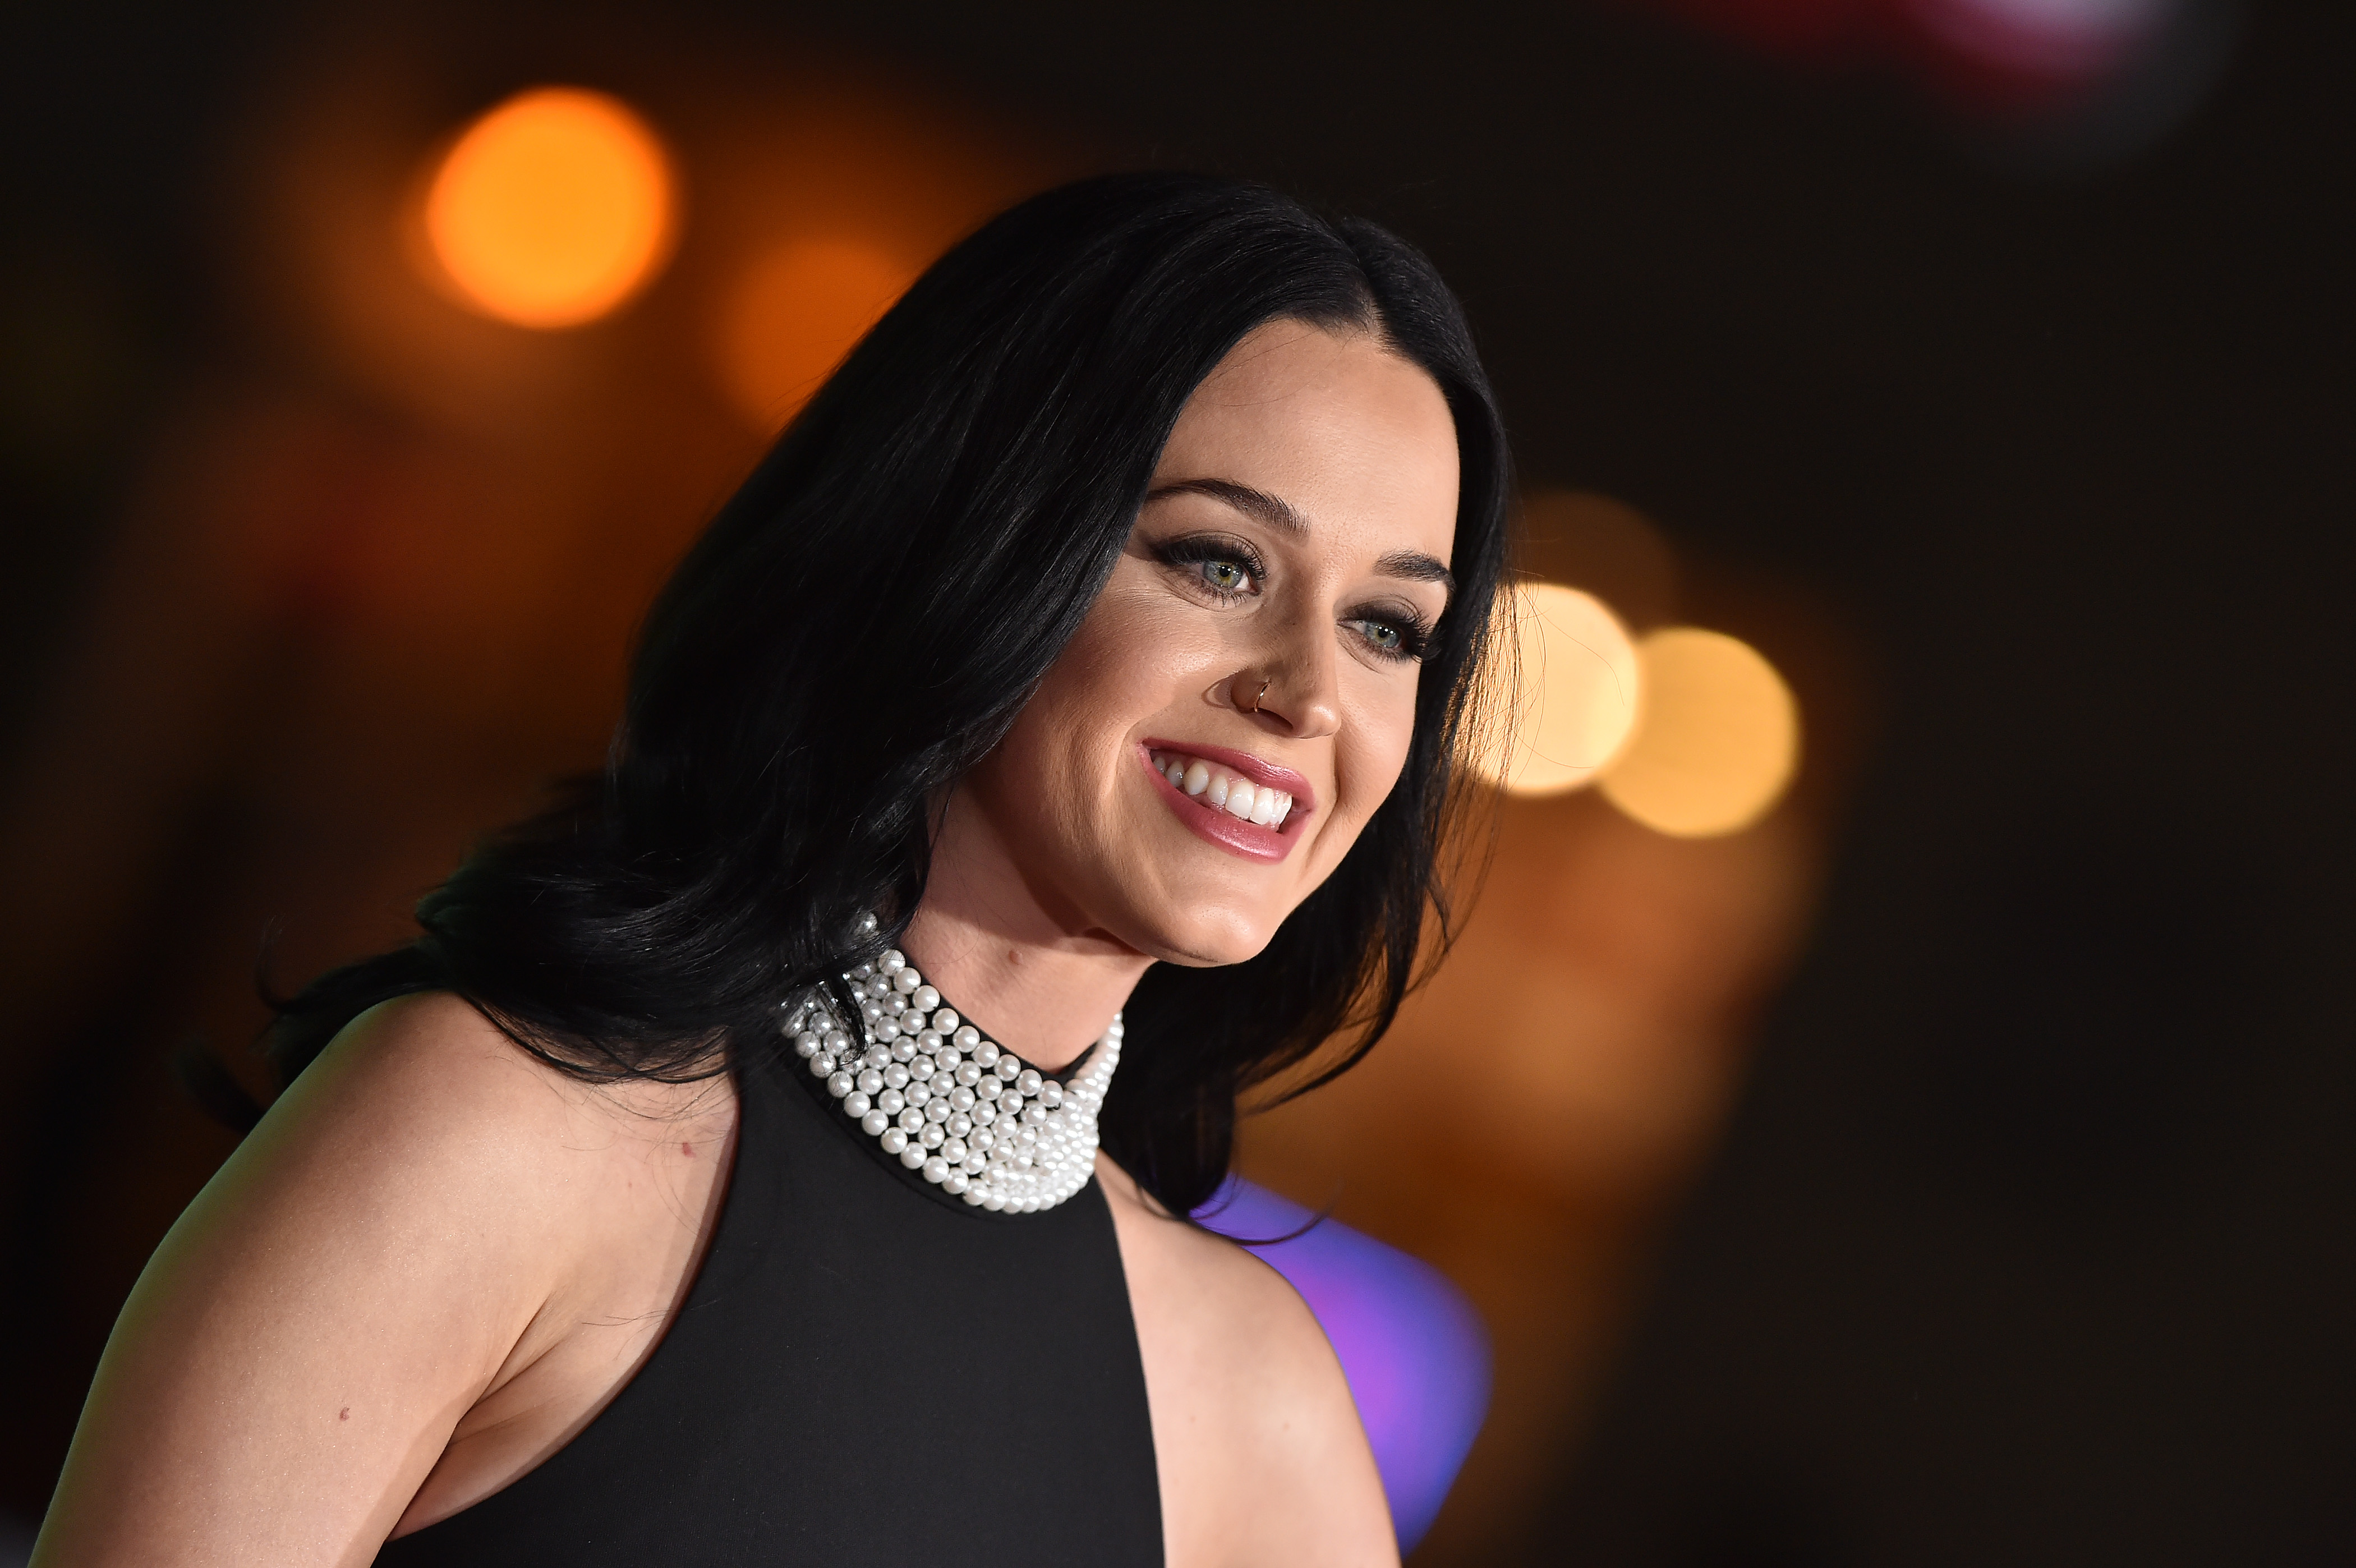 Katy Perry drops new single Chained To The Rhythm and it's a reggae-inspired jam